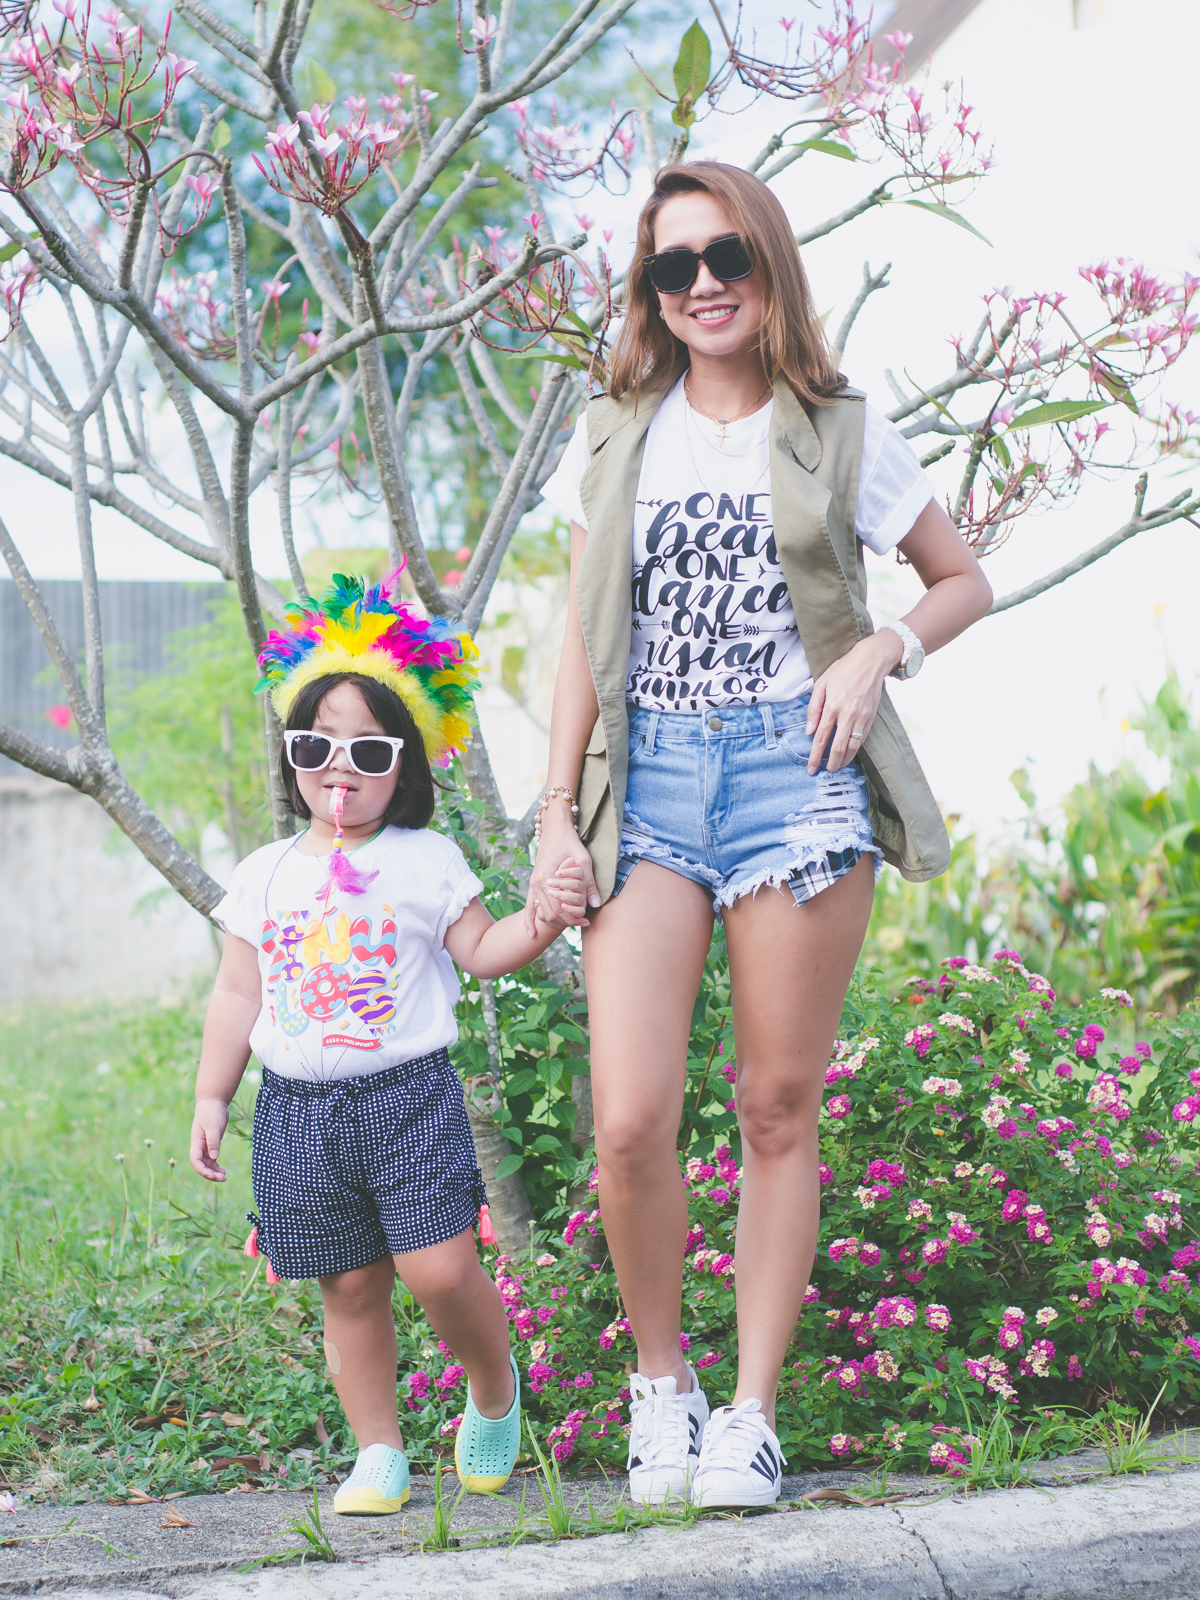 Cebu Fashion Blogger, Sinulog, Sinulog 2016, Sinulog Outfit, OUTFIT OF THE DAY, Mom and Daughter, Cebu Bloggers, Cebu Events, Mommy and Daughter style, Mommy blogger, Cebu lifestyle blog,